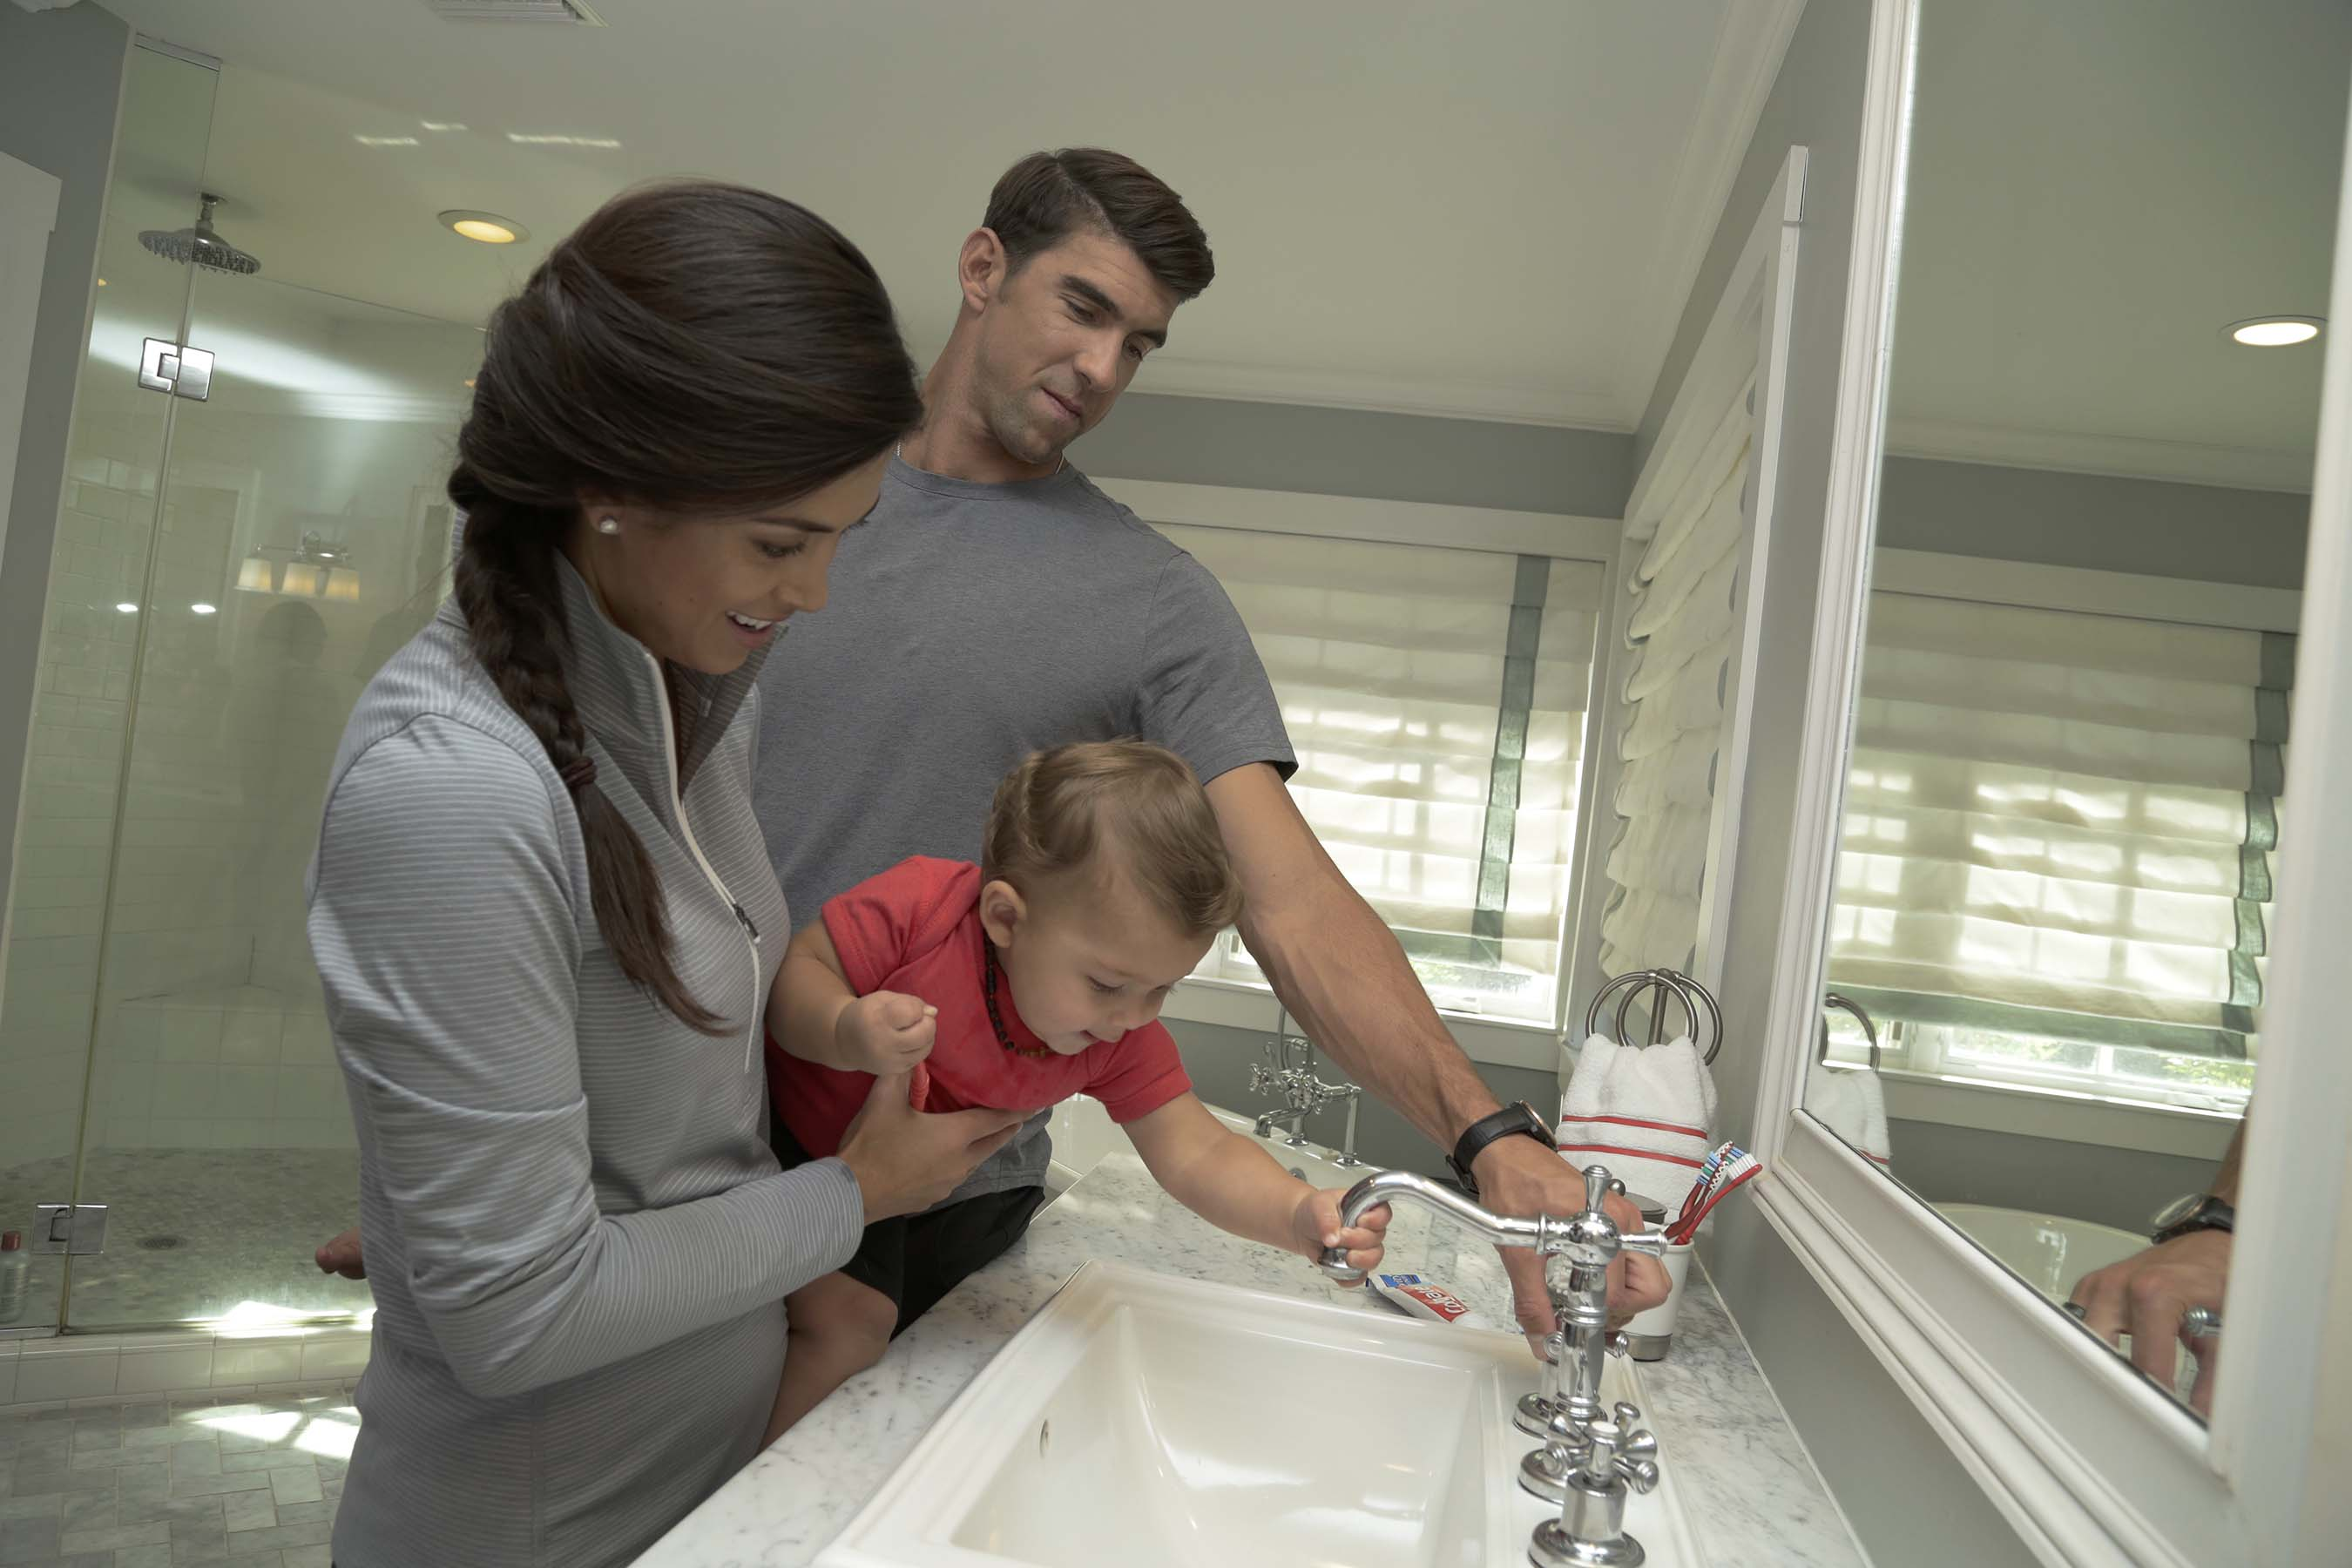 Colgate-Palmolive And World Champion Swimmer Michael Phelps Team Up To Make Waves In Water Conservation By Inspiring A New Generation To Turn Off The Faucet